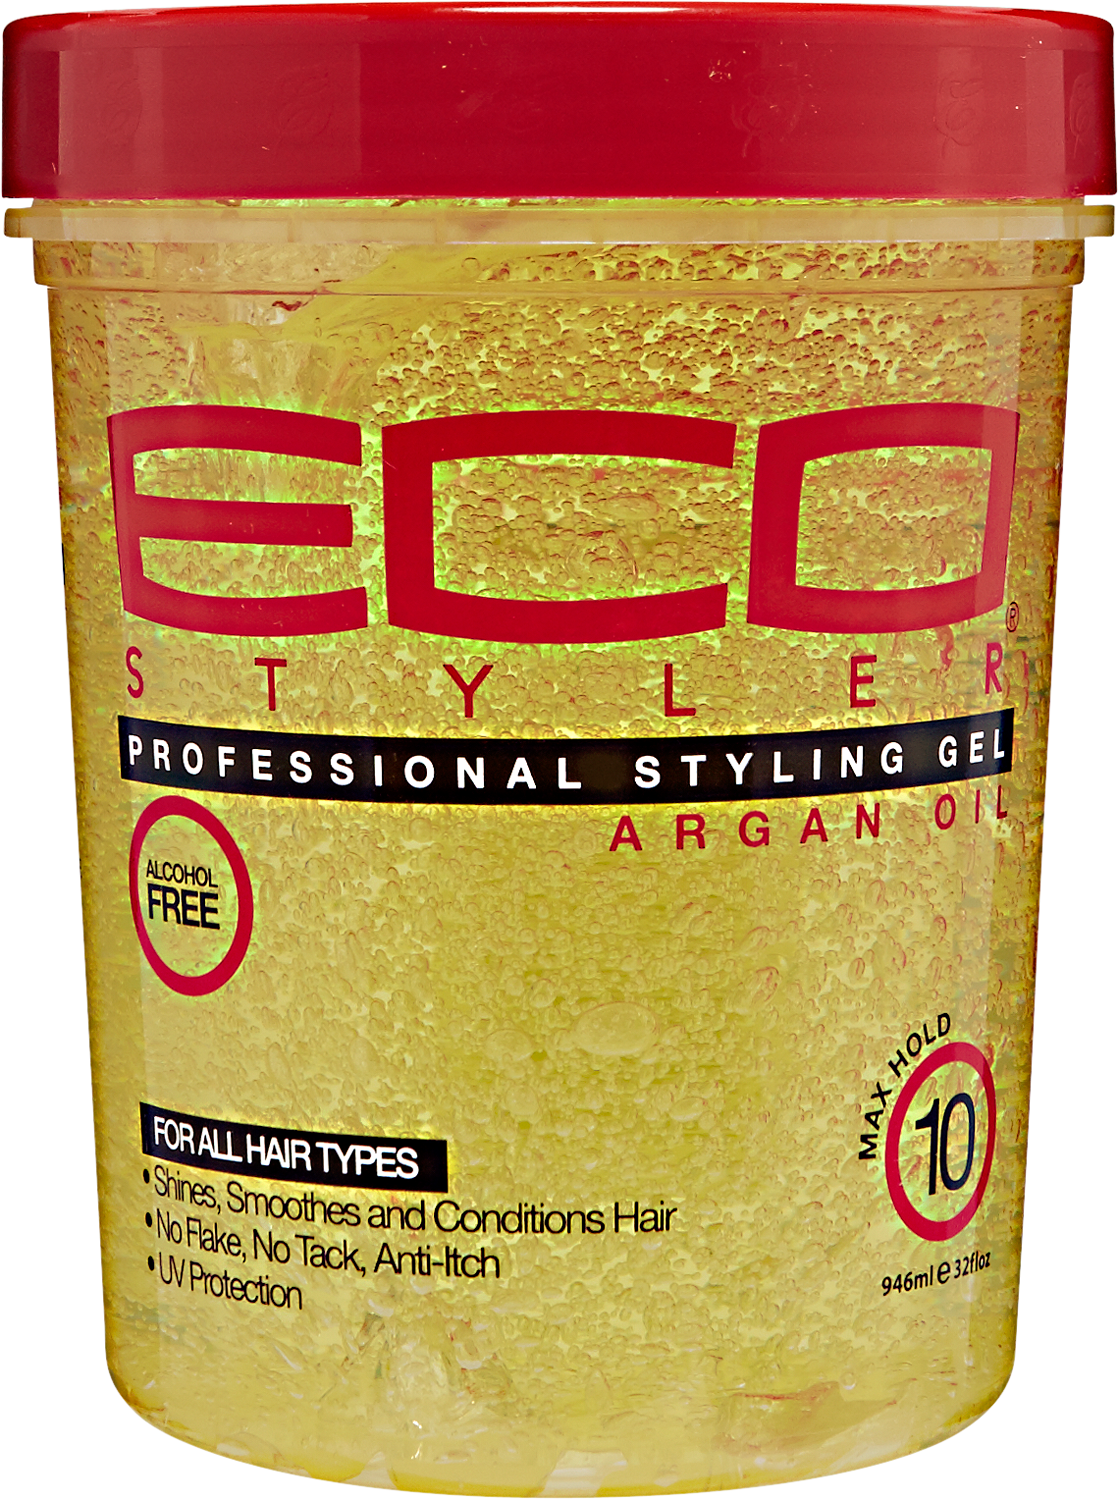 Ecoco Eco Styler Moroccan Argan Oil Styling Gel